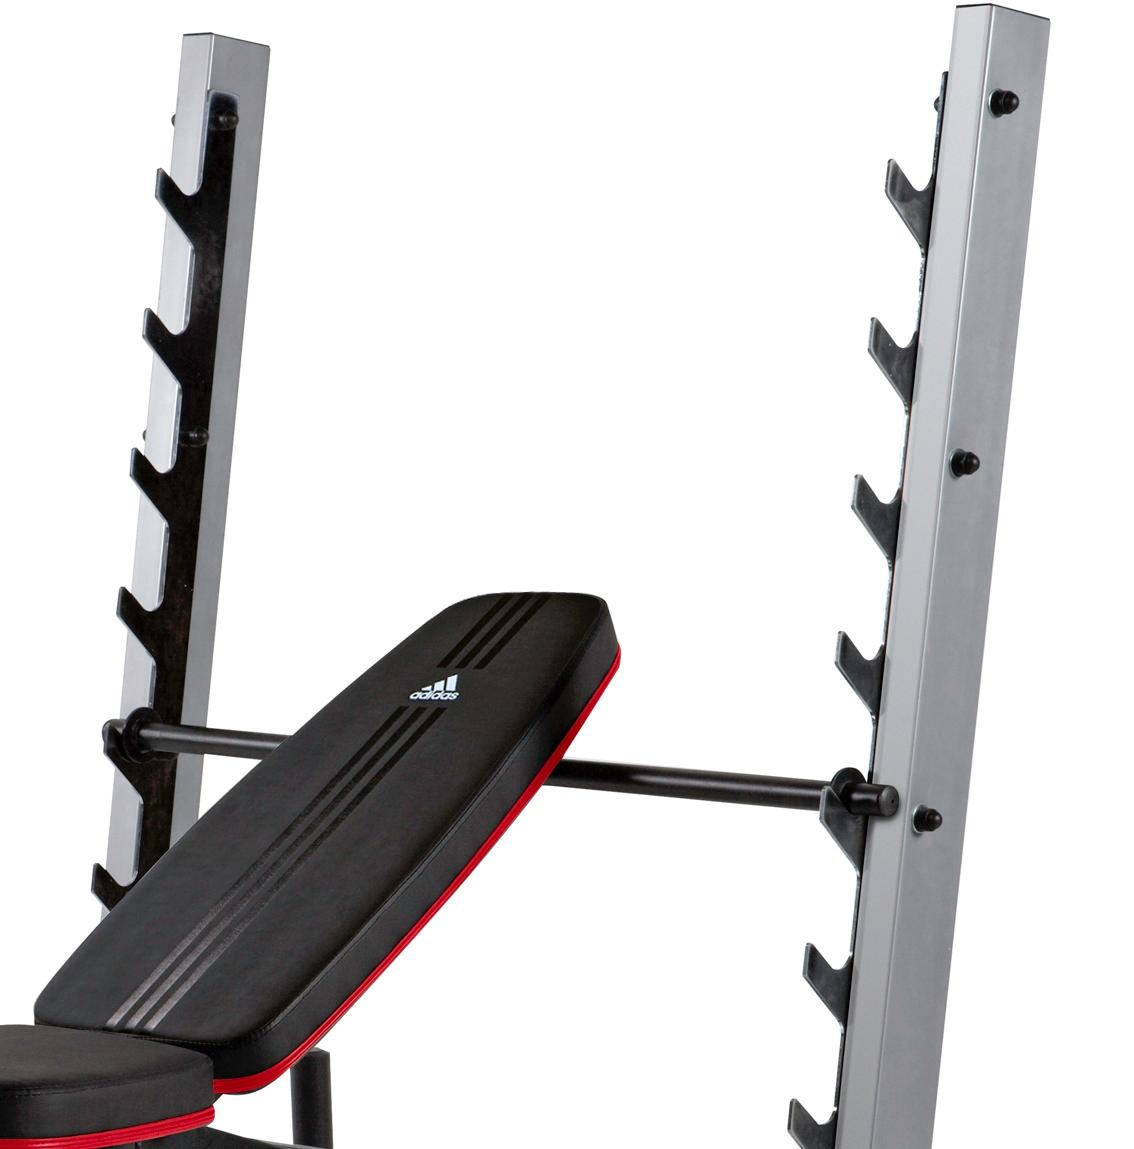 with lb standard marcy w bench set the mwb strength is quality weight